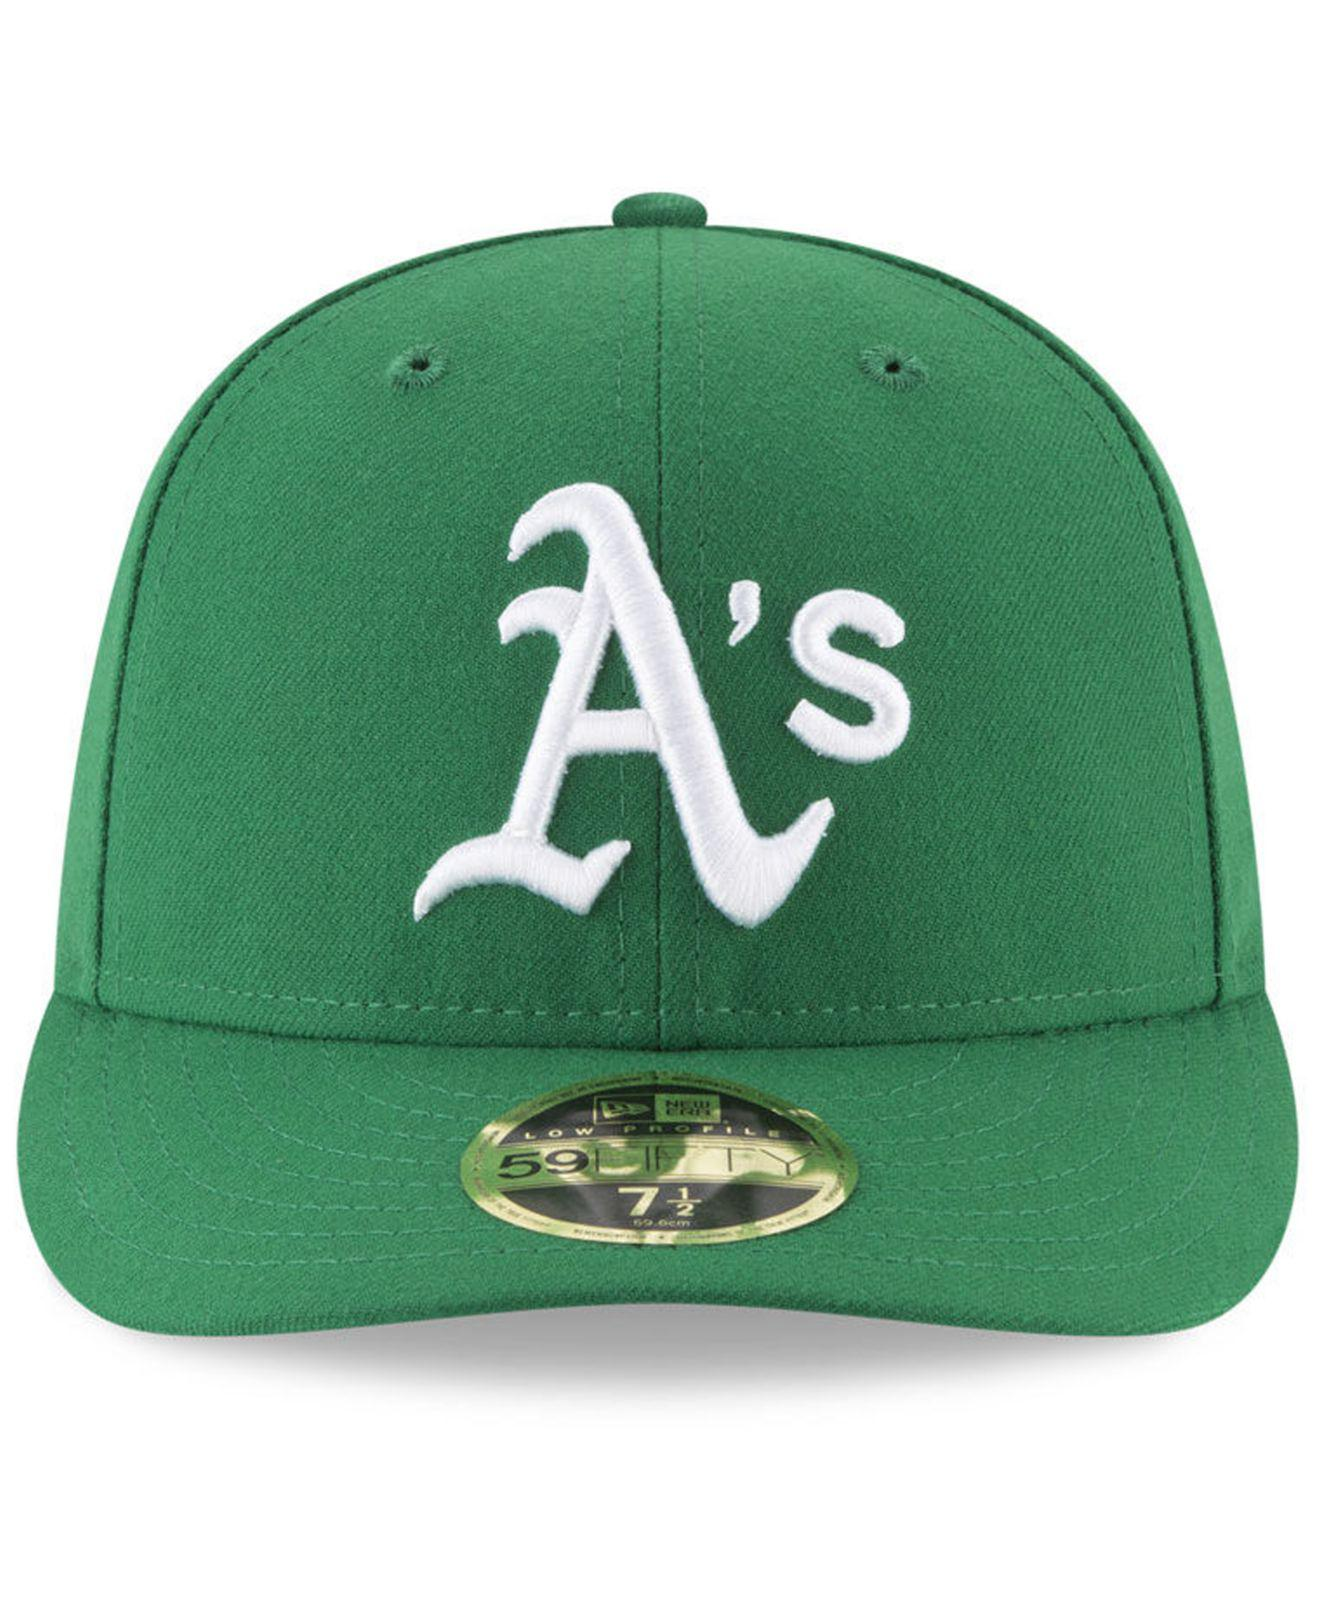 Lyst - Ktz Oakland Athletics Low Profile Ac Performance 59fifty Fitted Cap  in Green for Men 621539f7627e